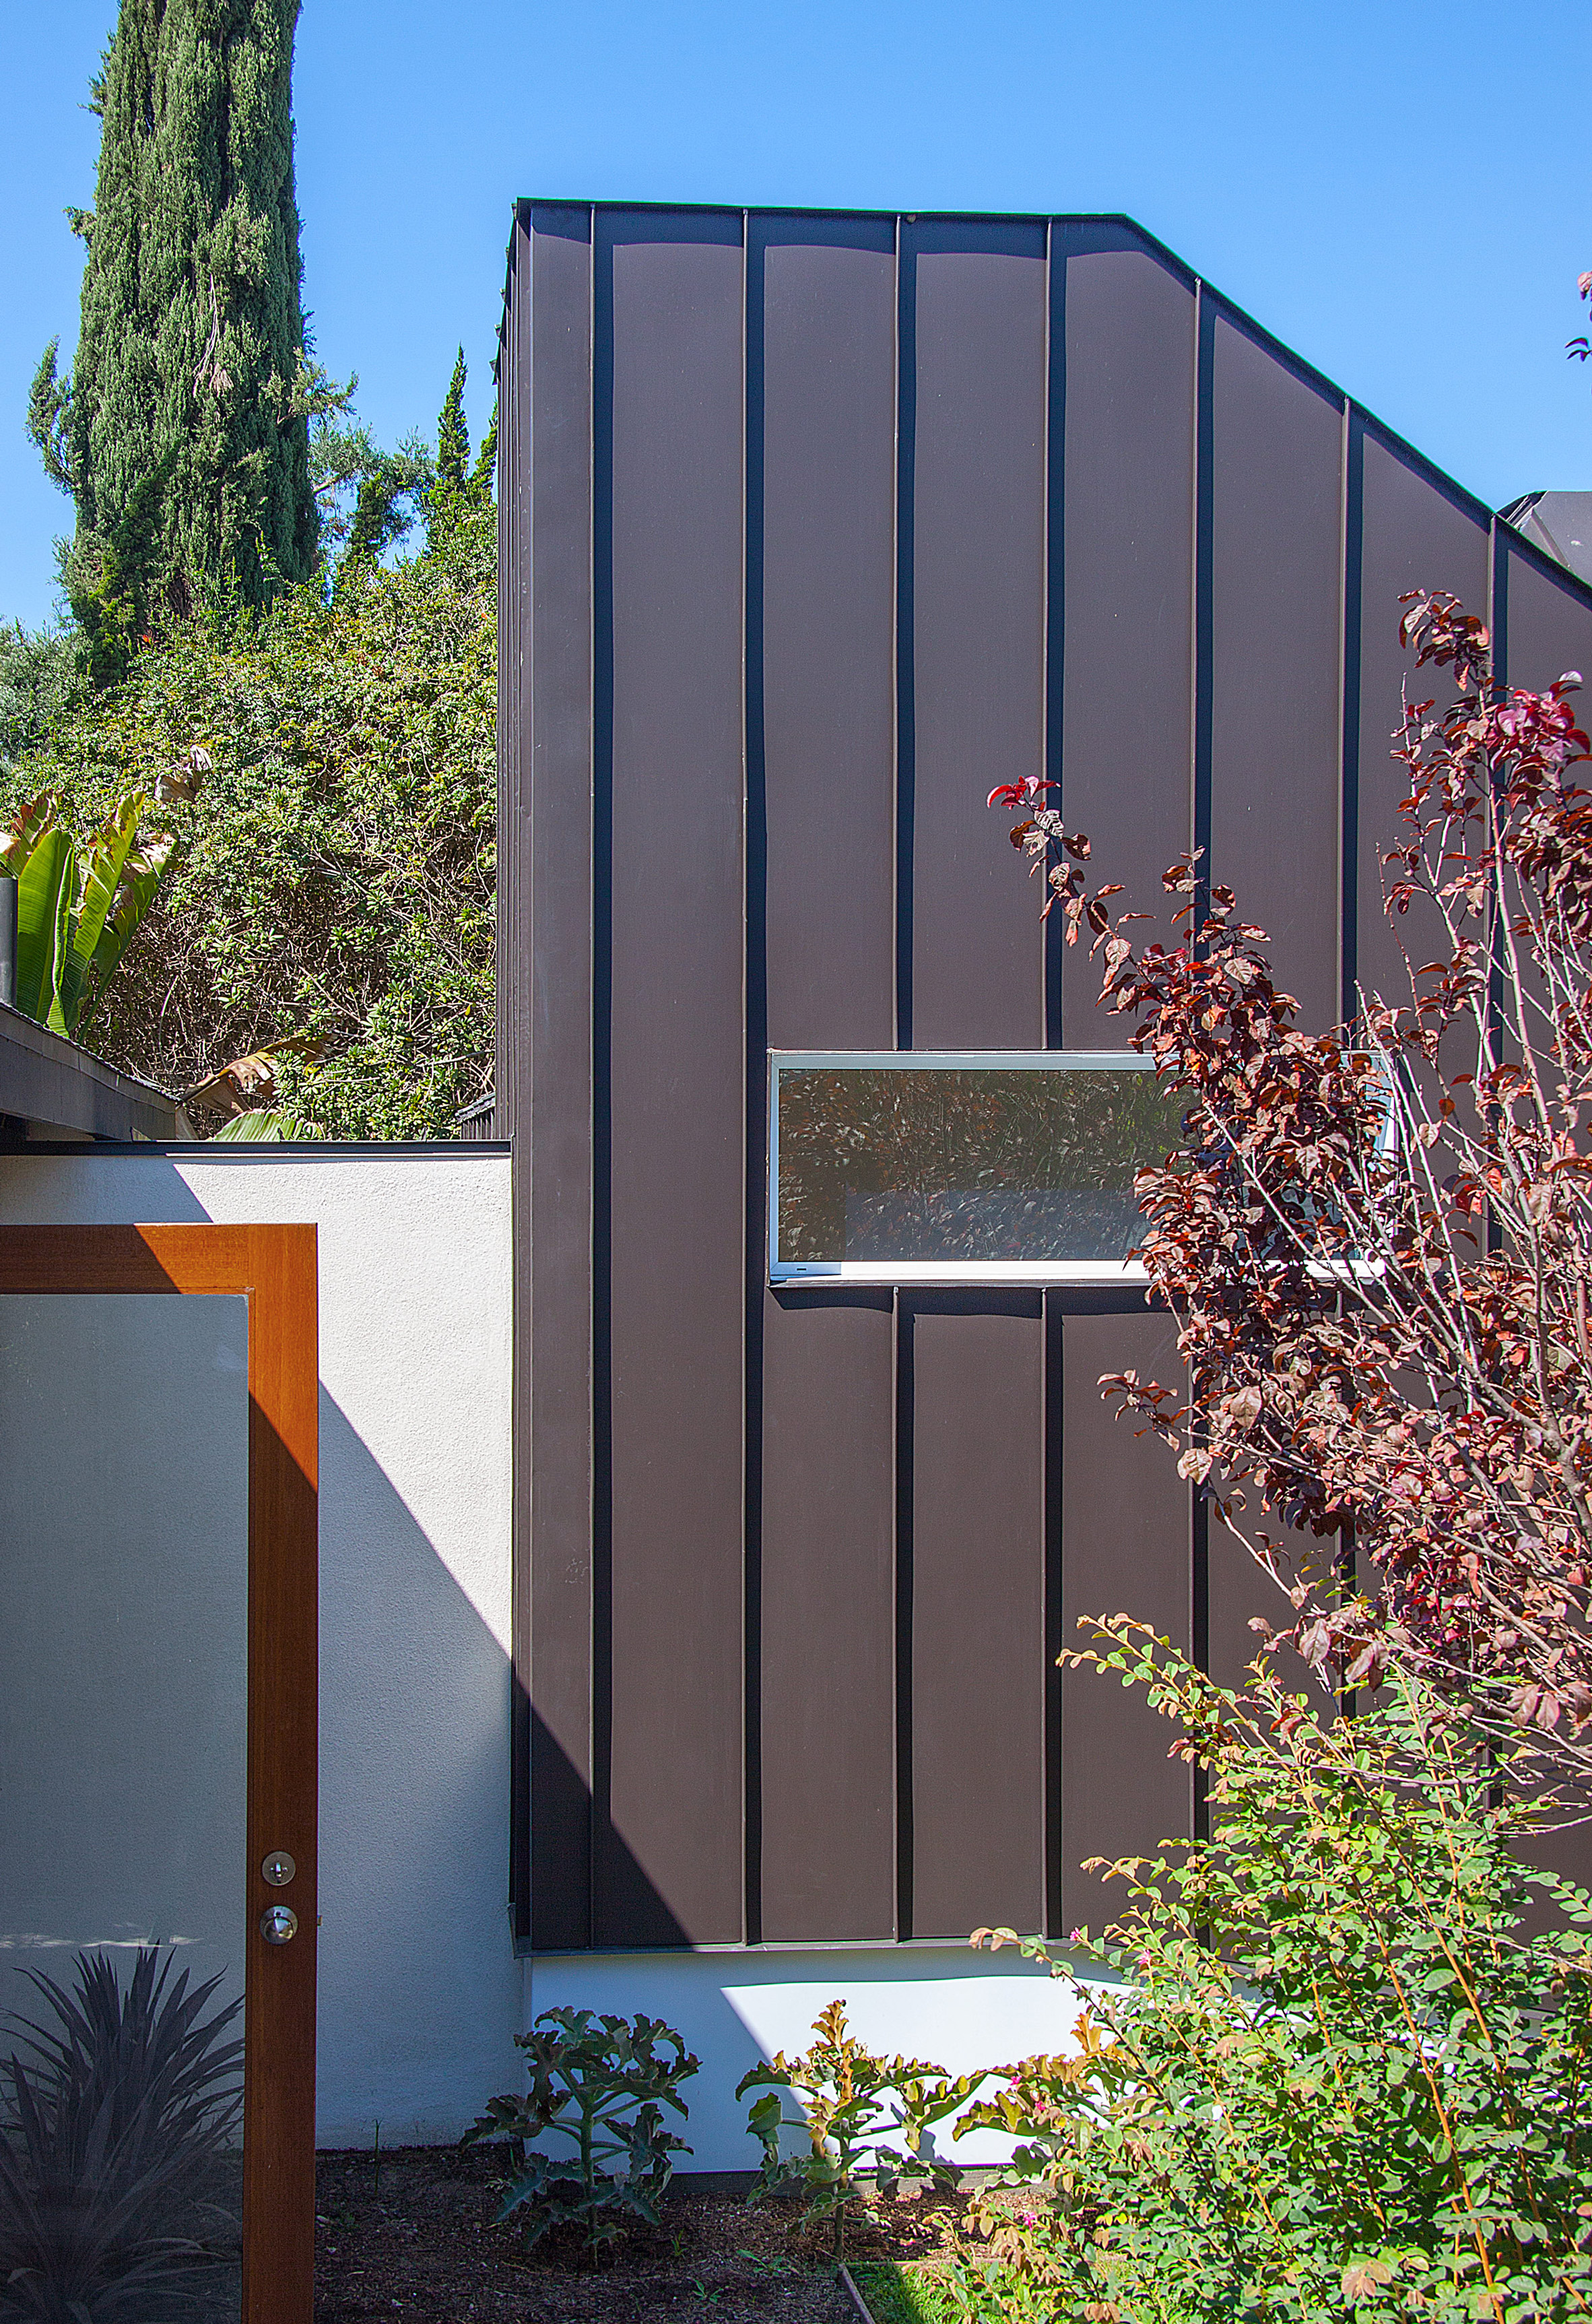 Shurkin Residence by Casey Hughes Architects